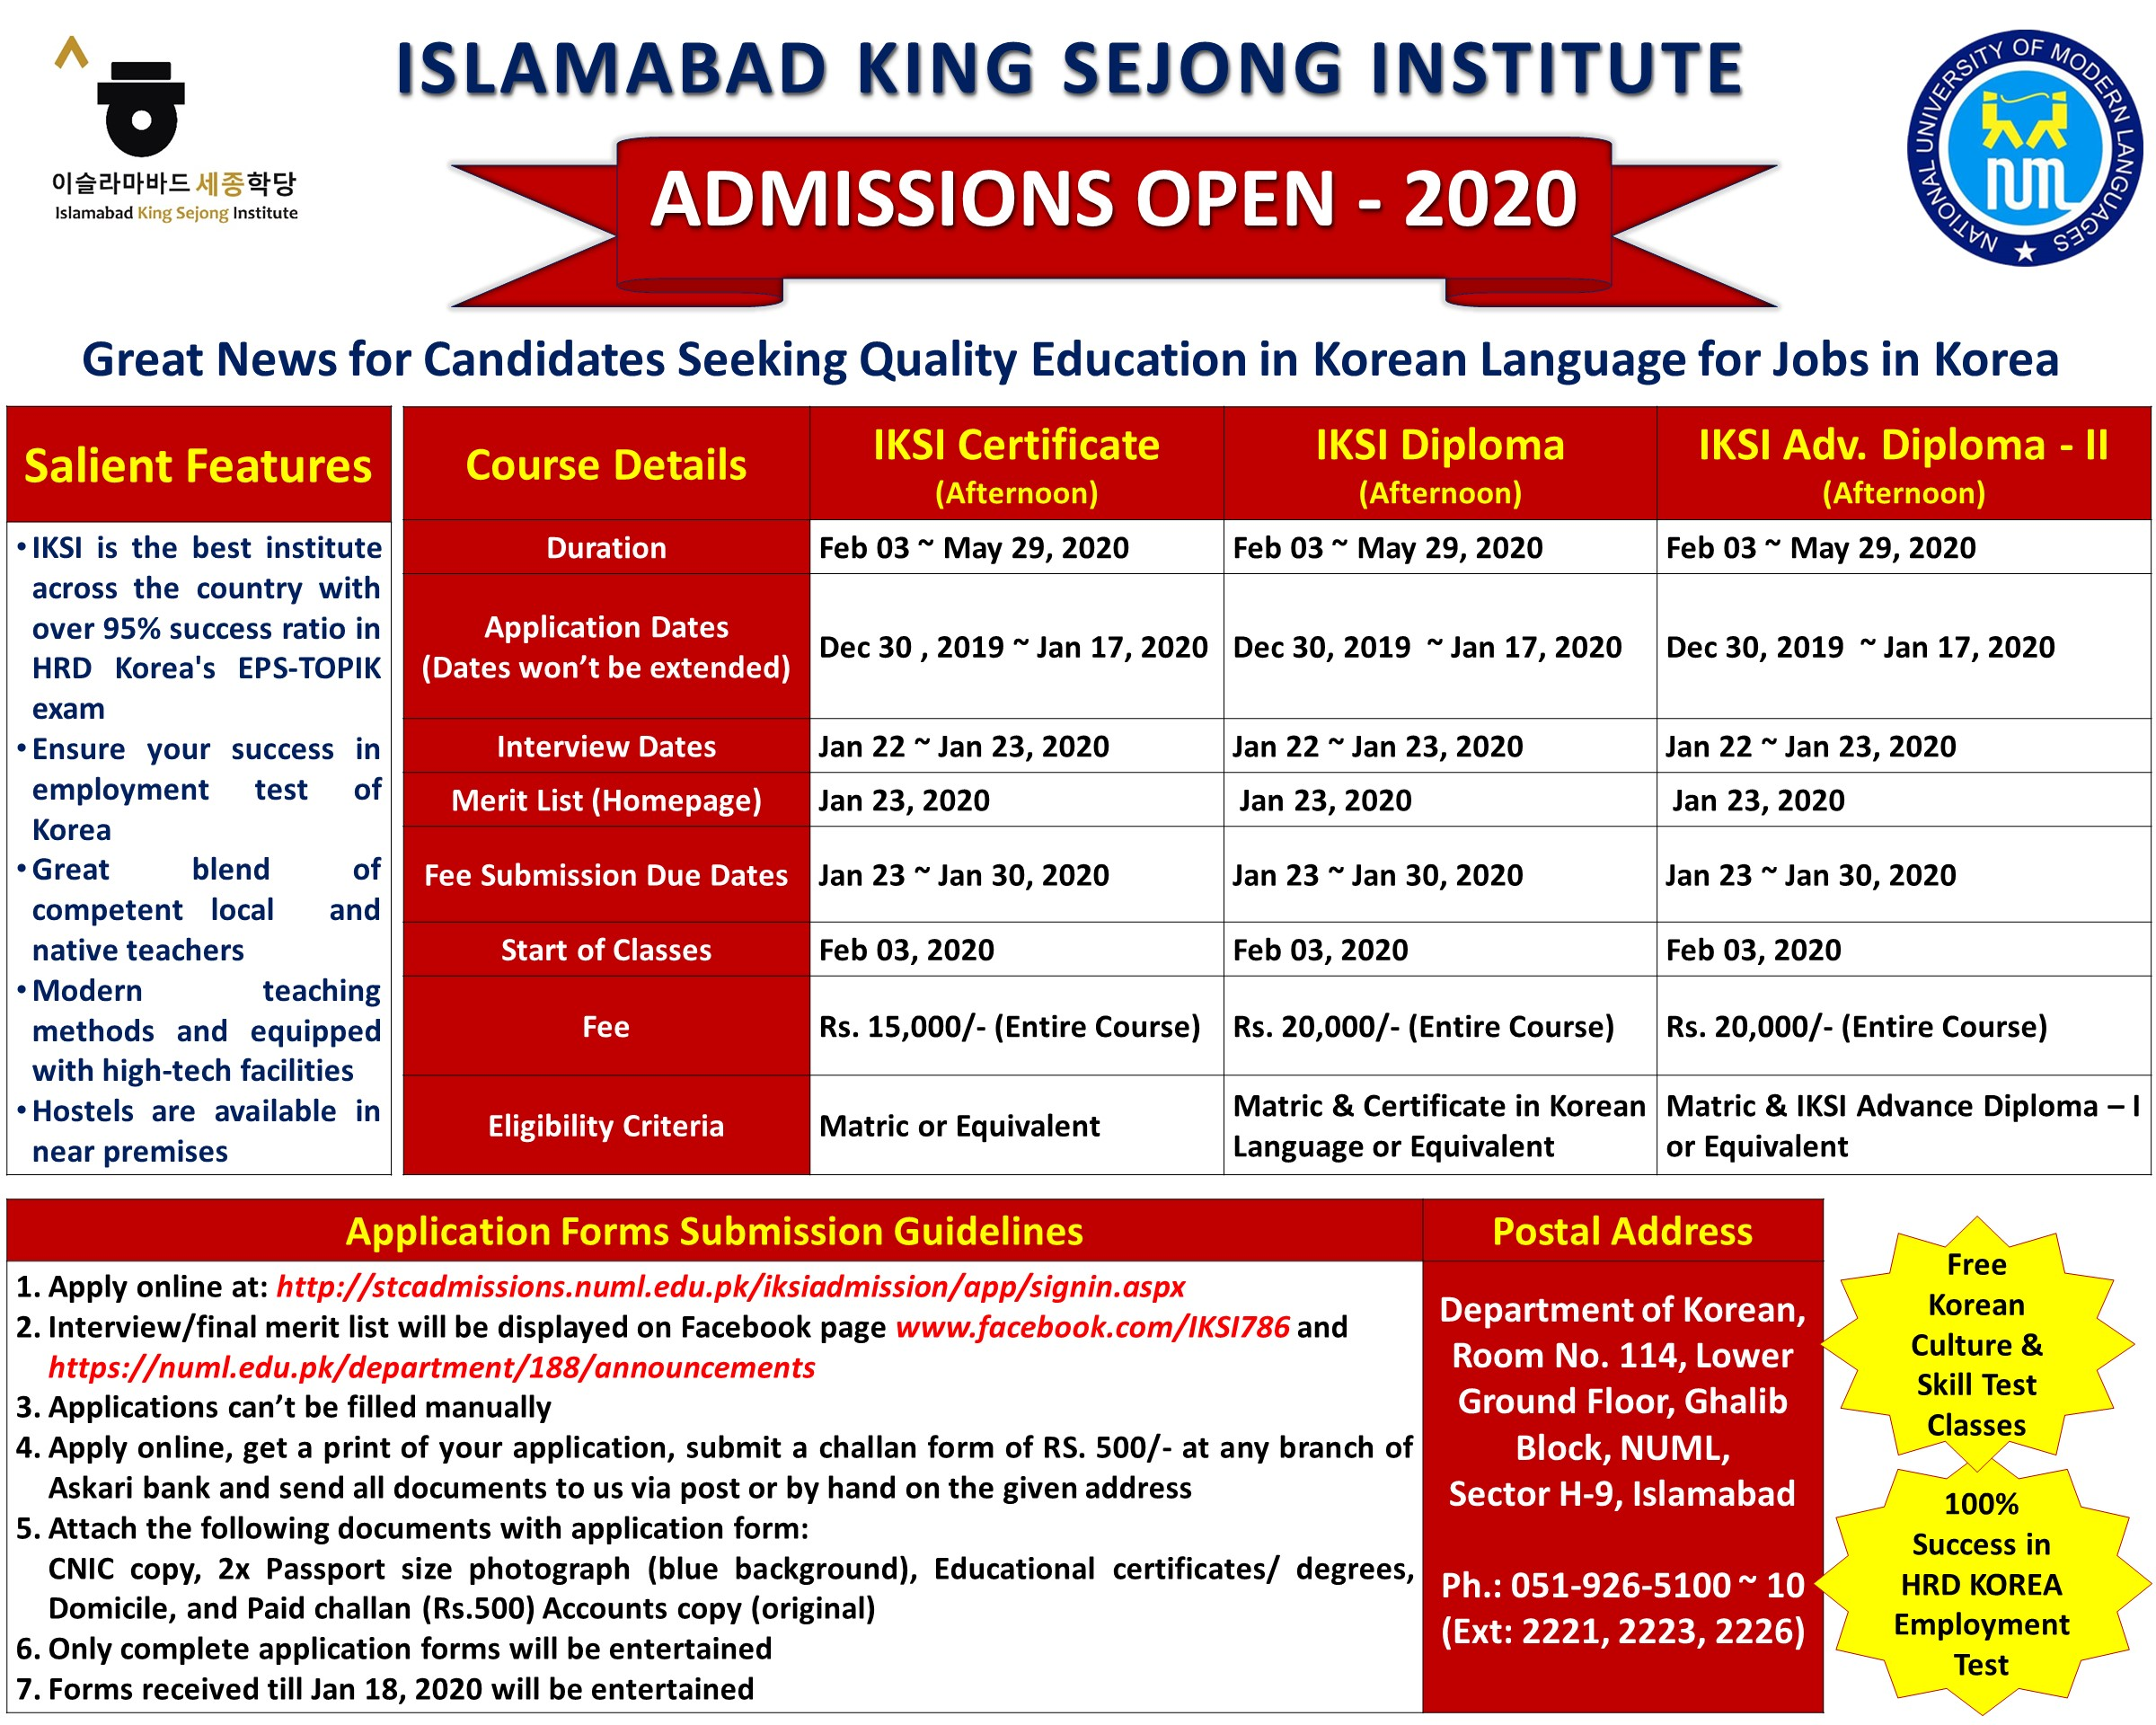 ISLAMABAD KING SEJONG INSTITUTE ADMISSIONS OPEN